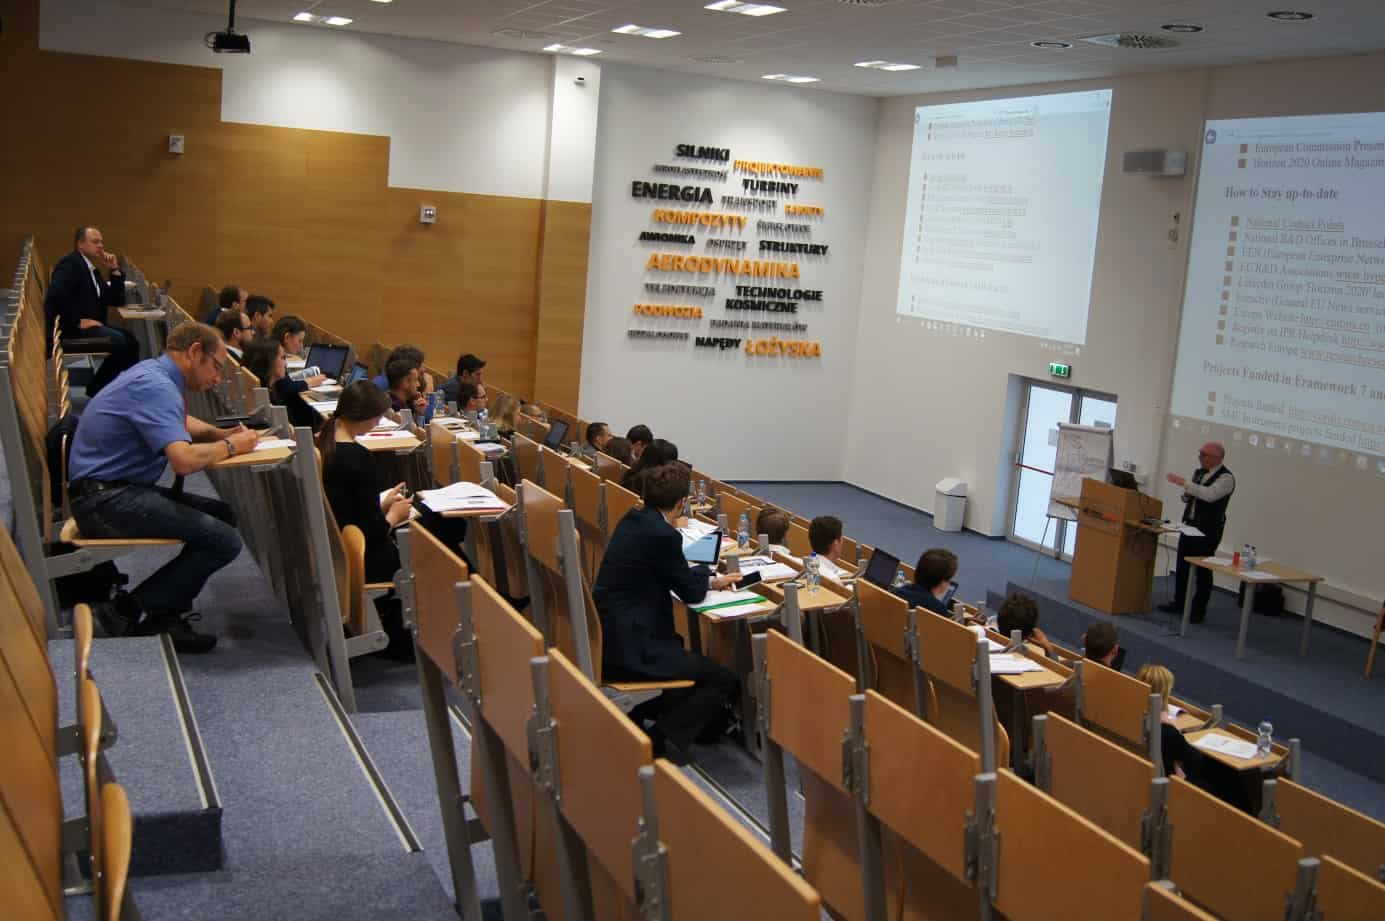 EREA Young Event 2016: preparing young researchers to tackle the challenges in Aeronautics research